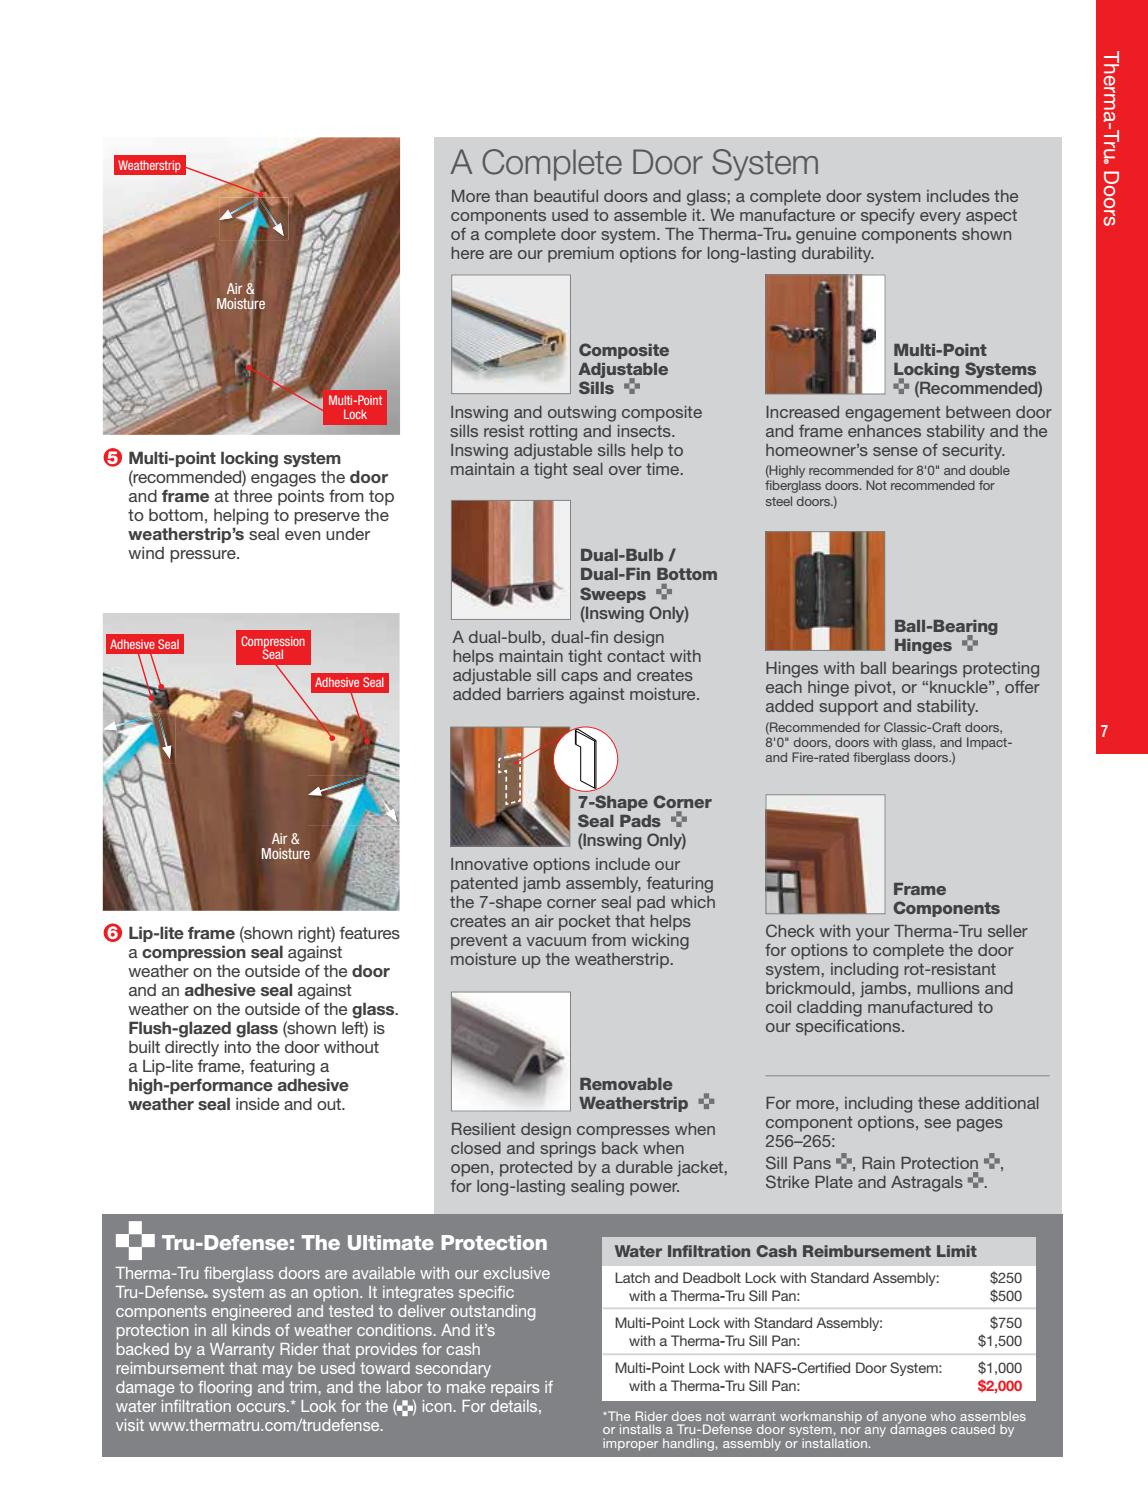 2017 thermatru catalog by Door Depot - issuu